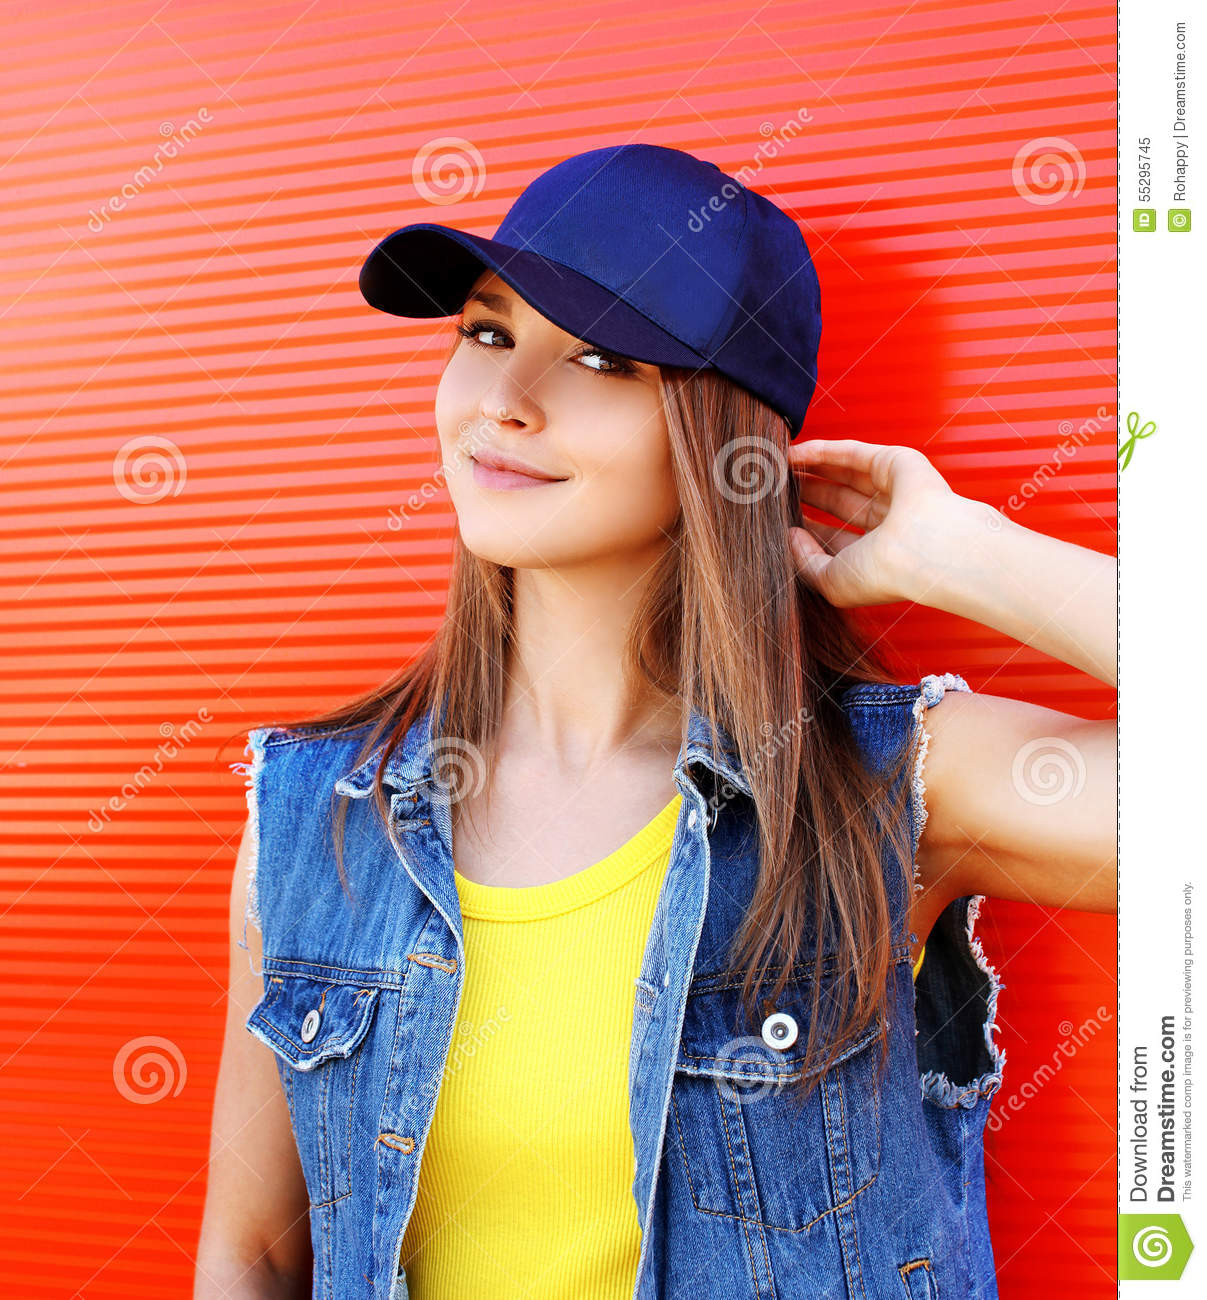 Portrait of pretty stylish young girl wearing a cap and jeans clothes over  red background 38c97556faa6